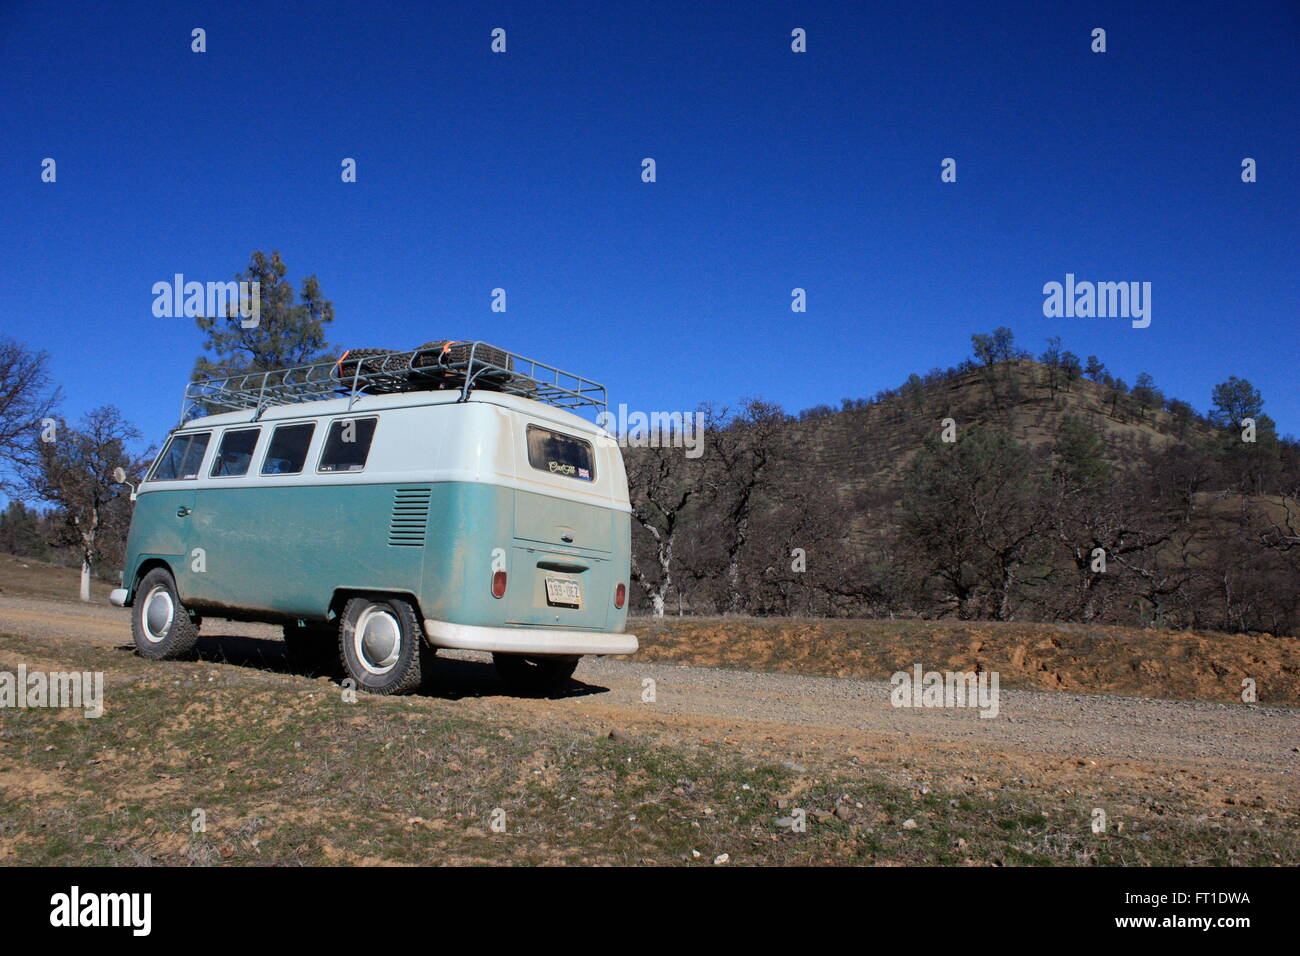 USA road trip in a vintage VW campervan - Stock Image